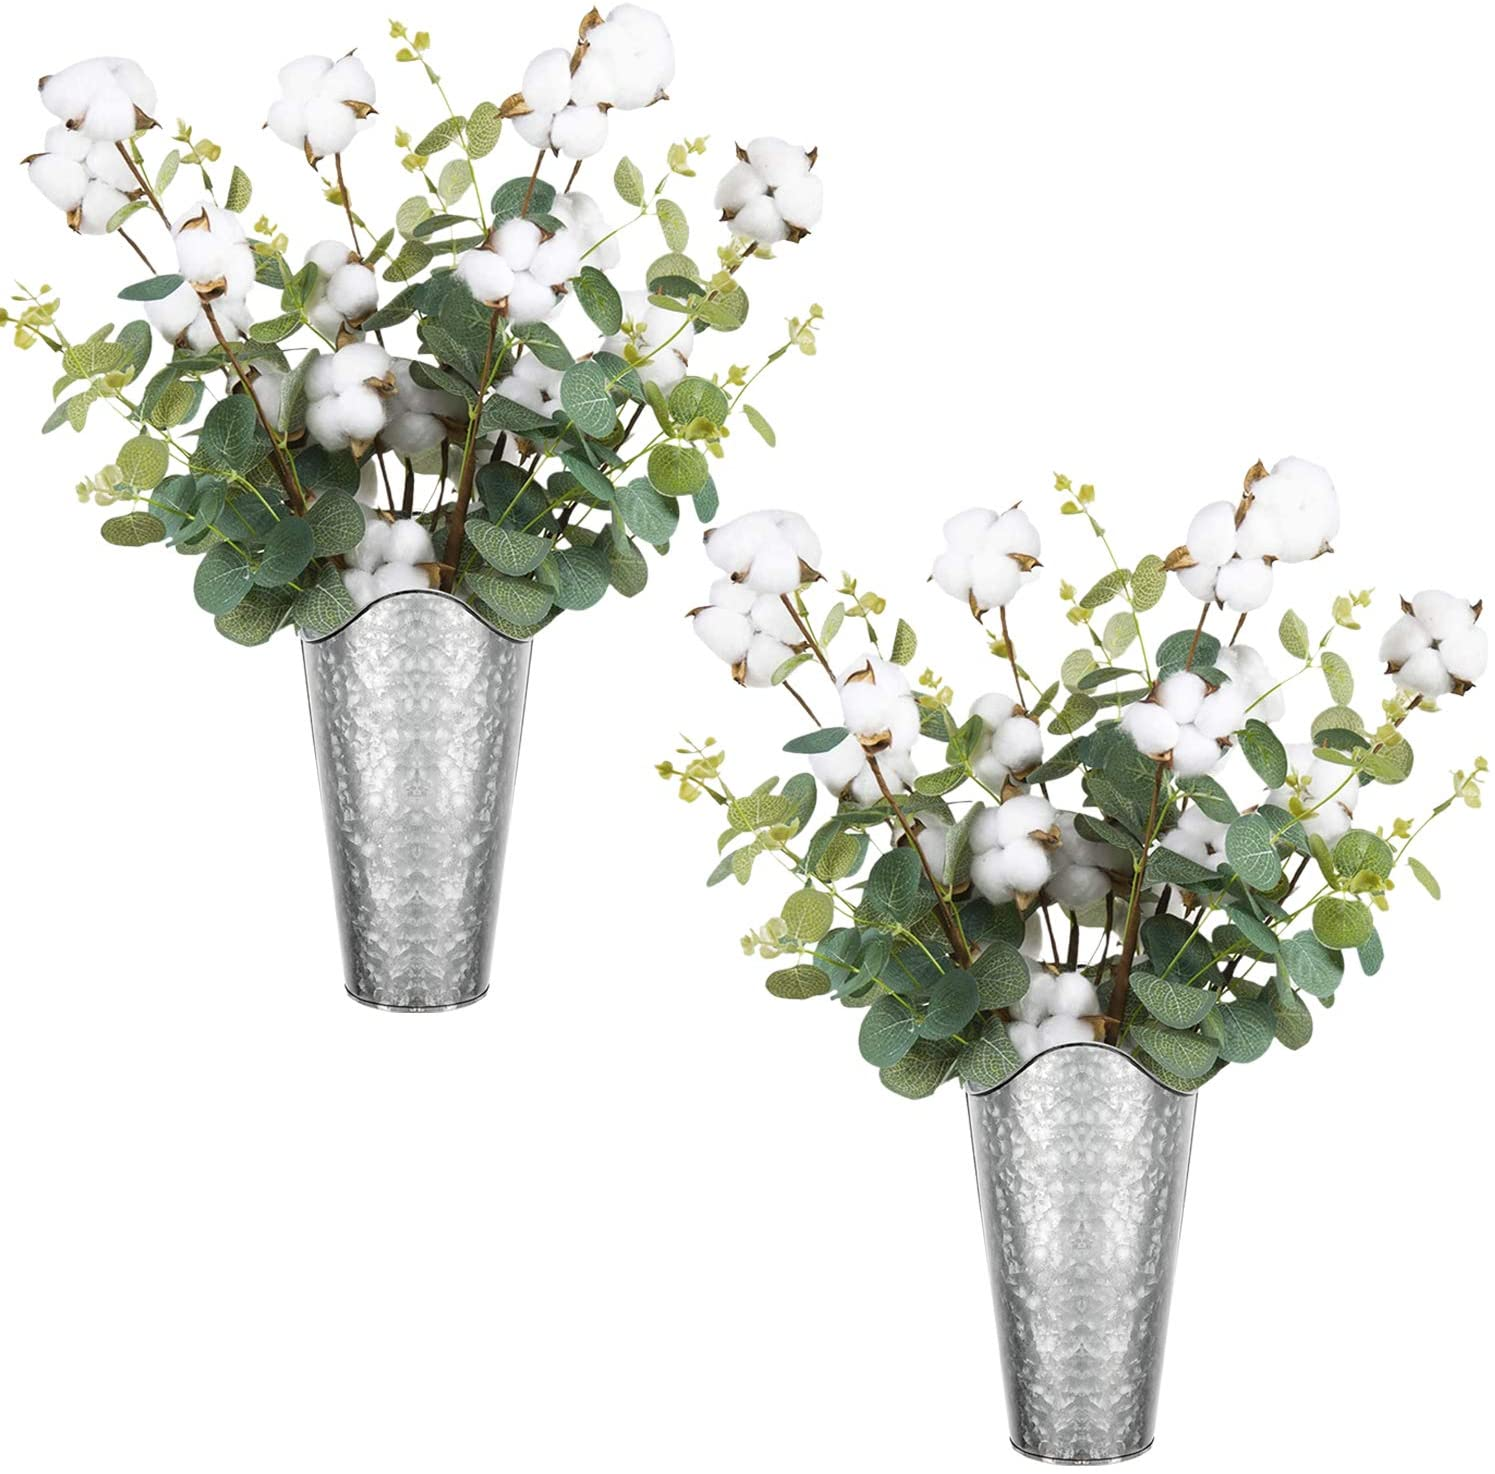 LIBWYS Galvanized Wall Planter 2 Sets and 8 Cottons Stems with Eucalyptus Metal Hanging Vase for Farmhouse Rustic Style Country Home Wall Decor